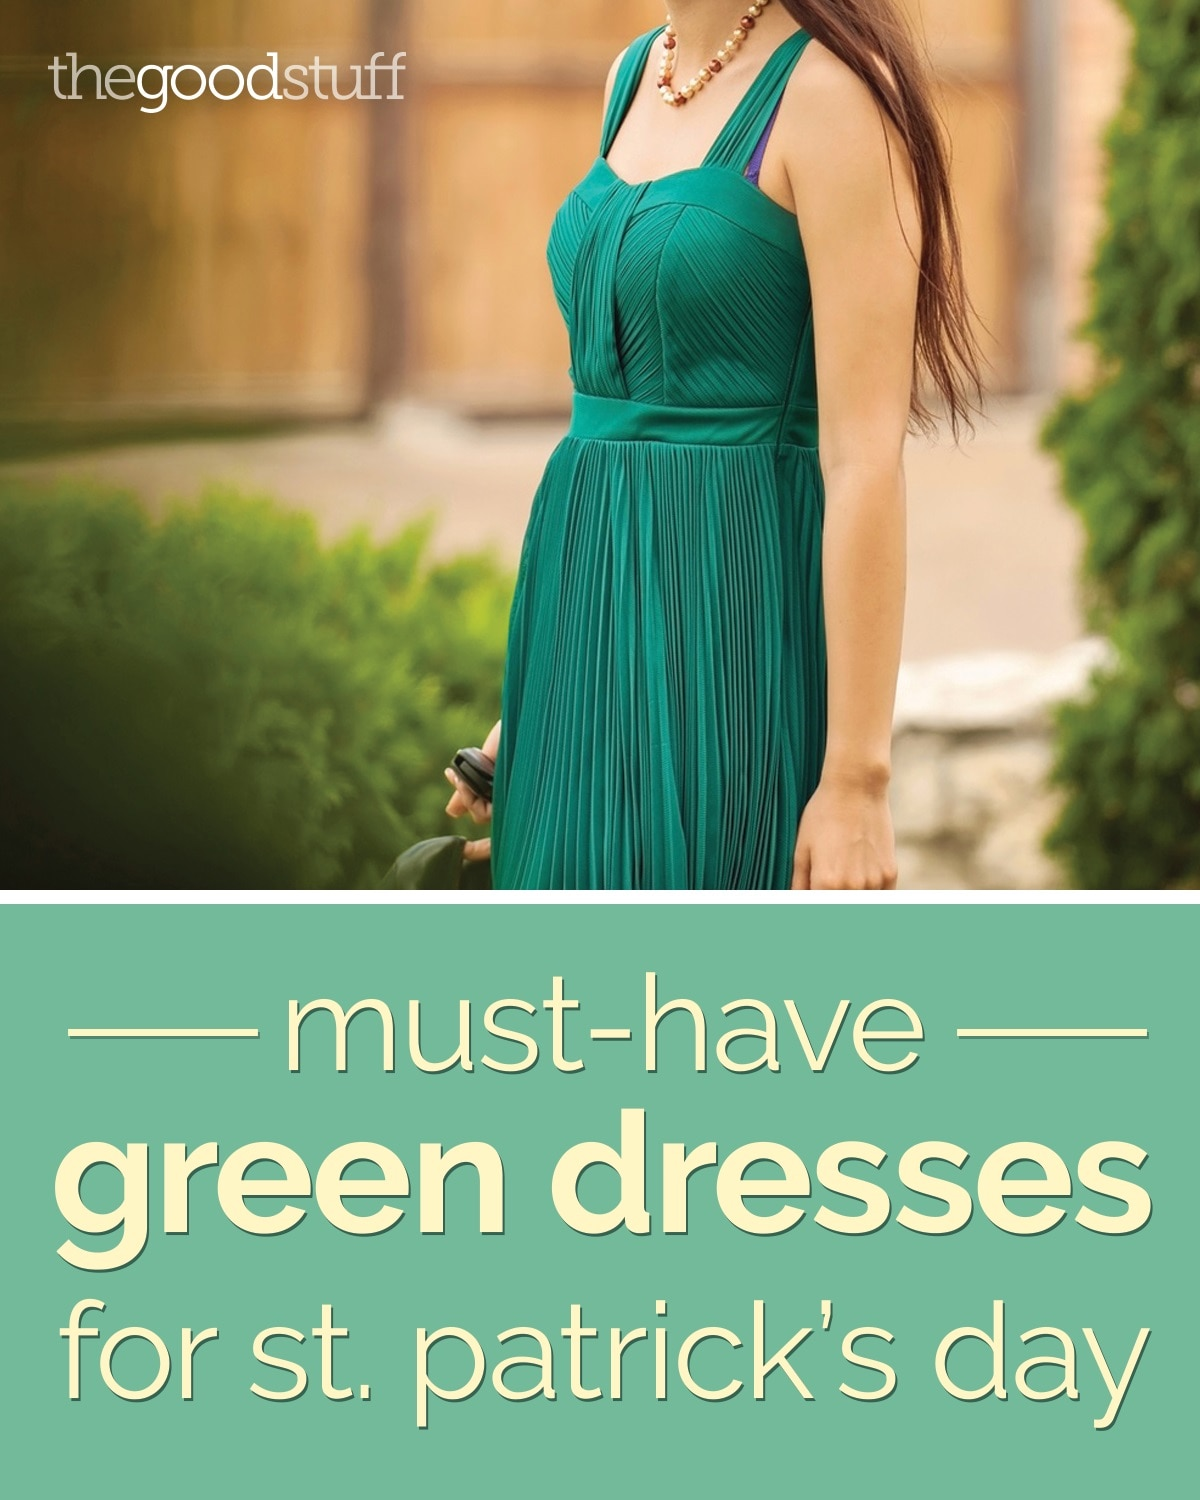 style-must-have-green-dresses